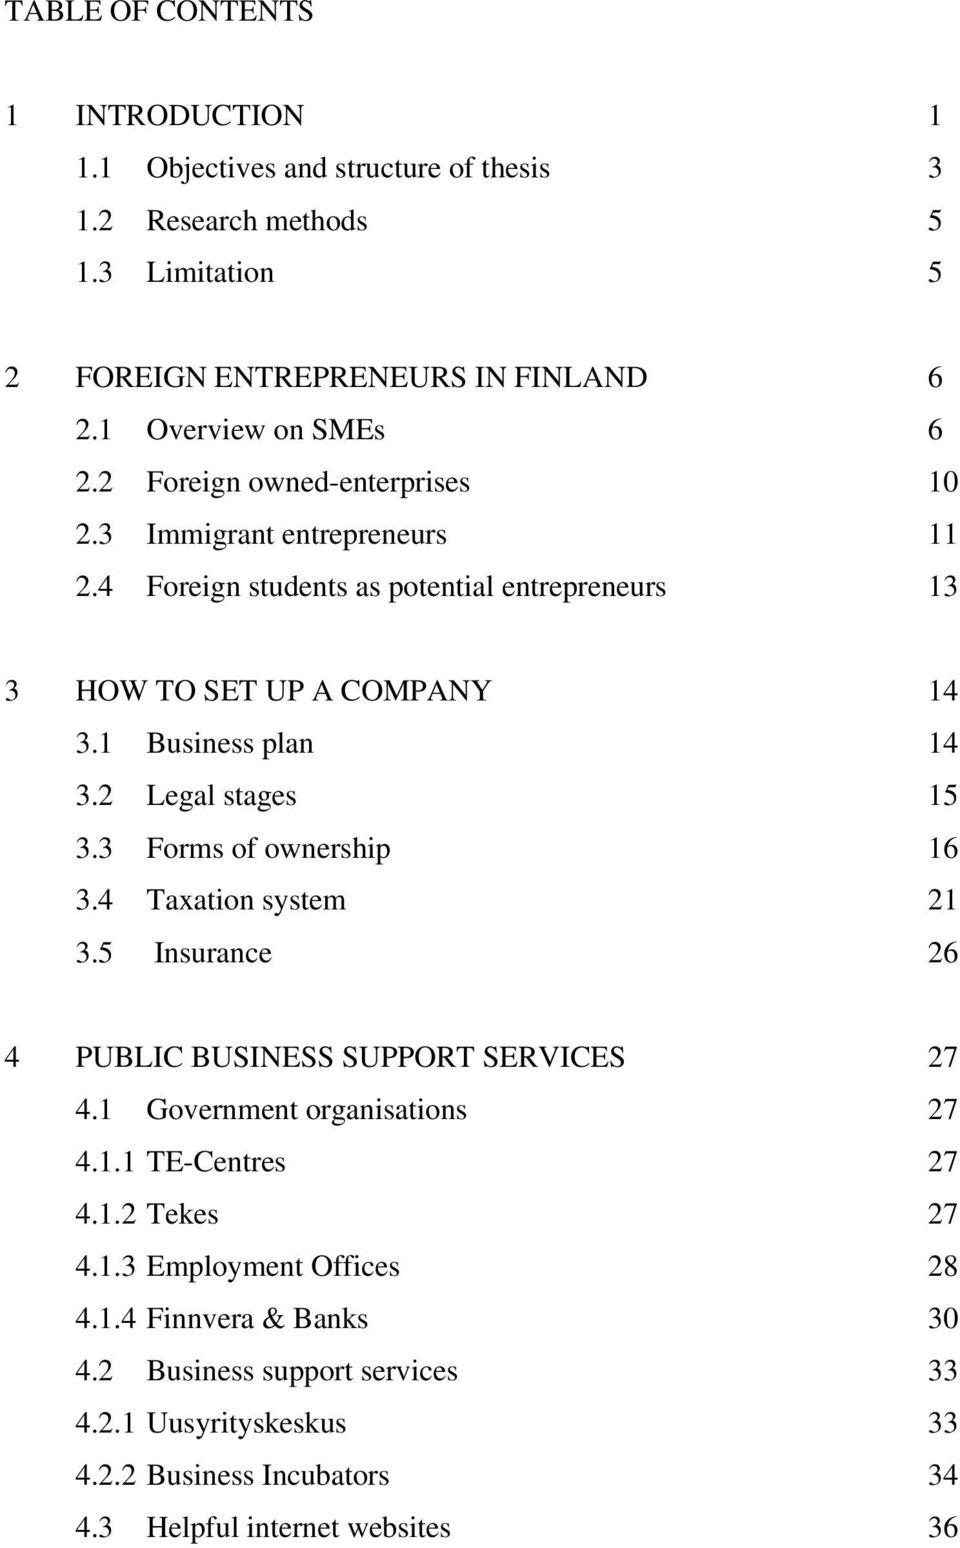 1 Business plan 14 3.2 Legal stages 15 3.3 Forms of ownership 16 3.4 Taxation system 21 3.5 Insurance 26 4 PUBLIC BUSINESS SUPPORT SERVICES 27 4.1 Government organisations 27 4.